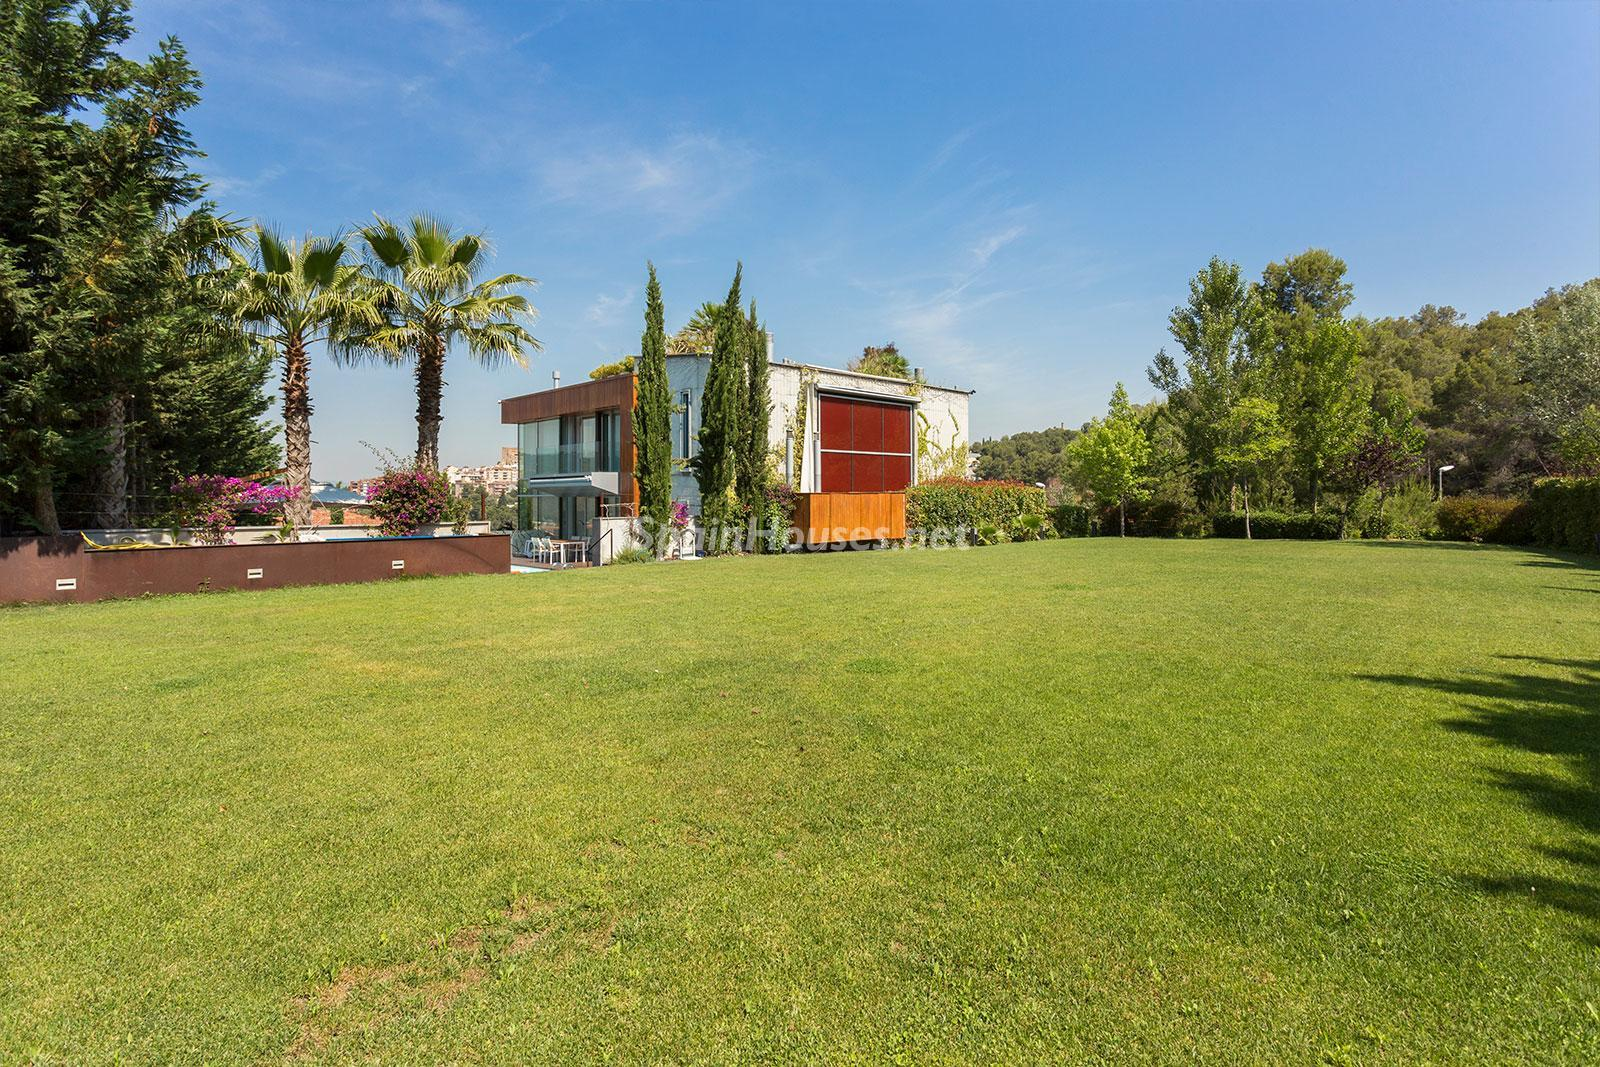 7. House for sale in Barcelona city - Superb 5 bed home in Barcelona features 2 swimming pools and a huge garden